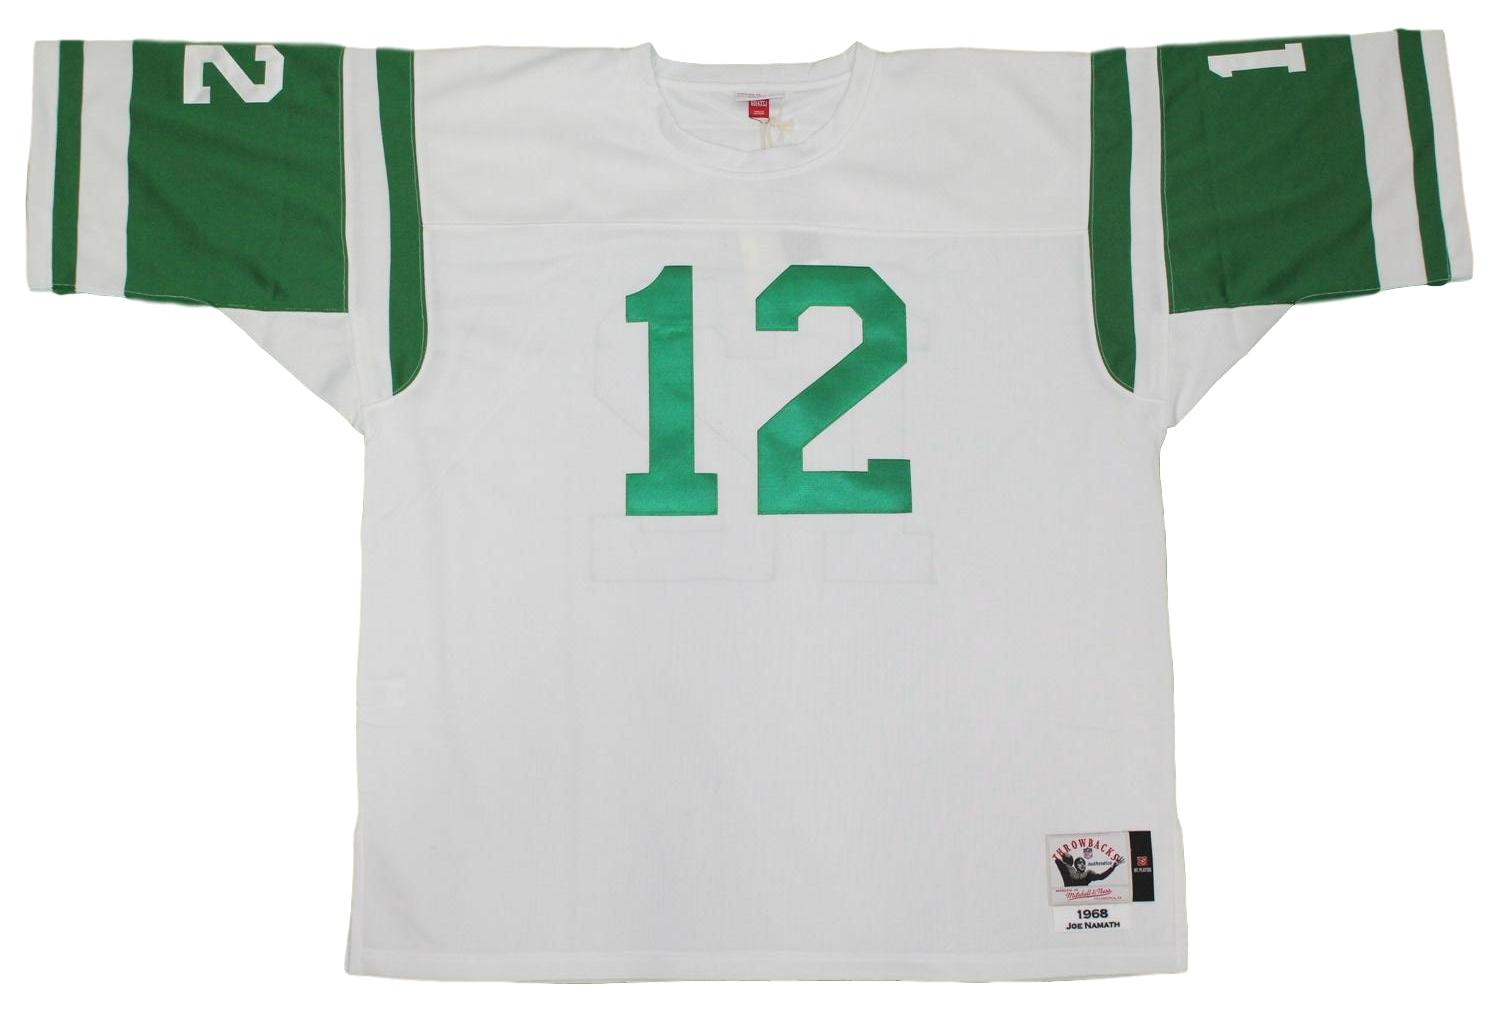 79ad9486 Details about Joe Namath New York Jets Mitchell & Ness Authentic 1968 NFL  Jersey - White